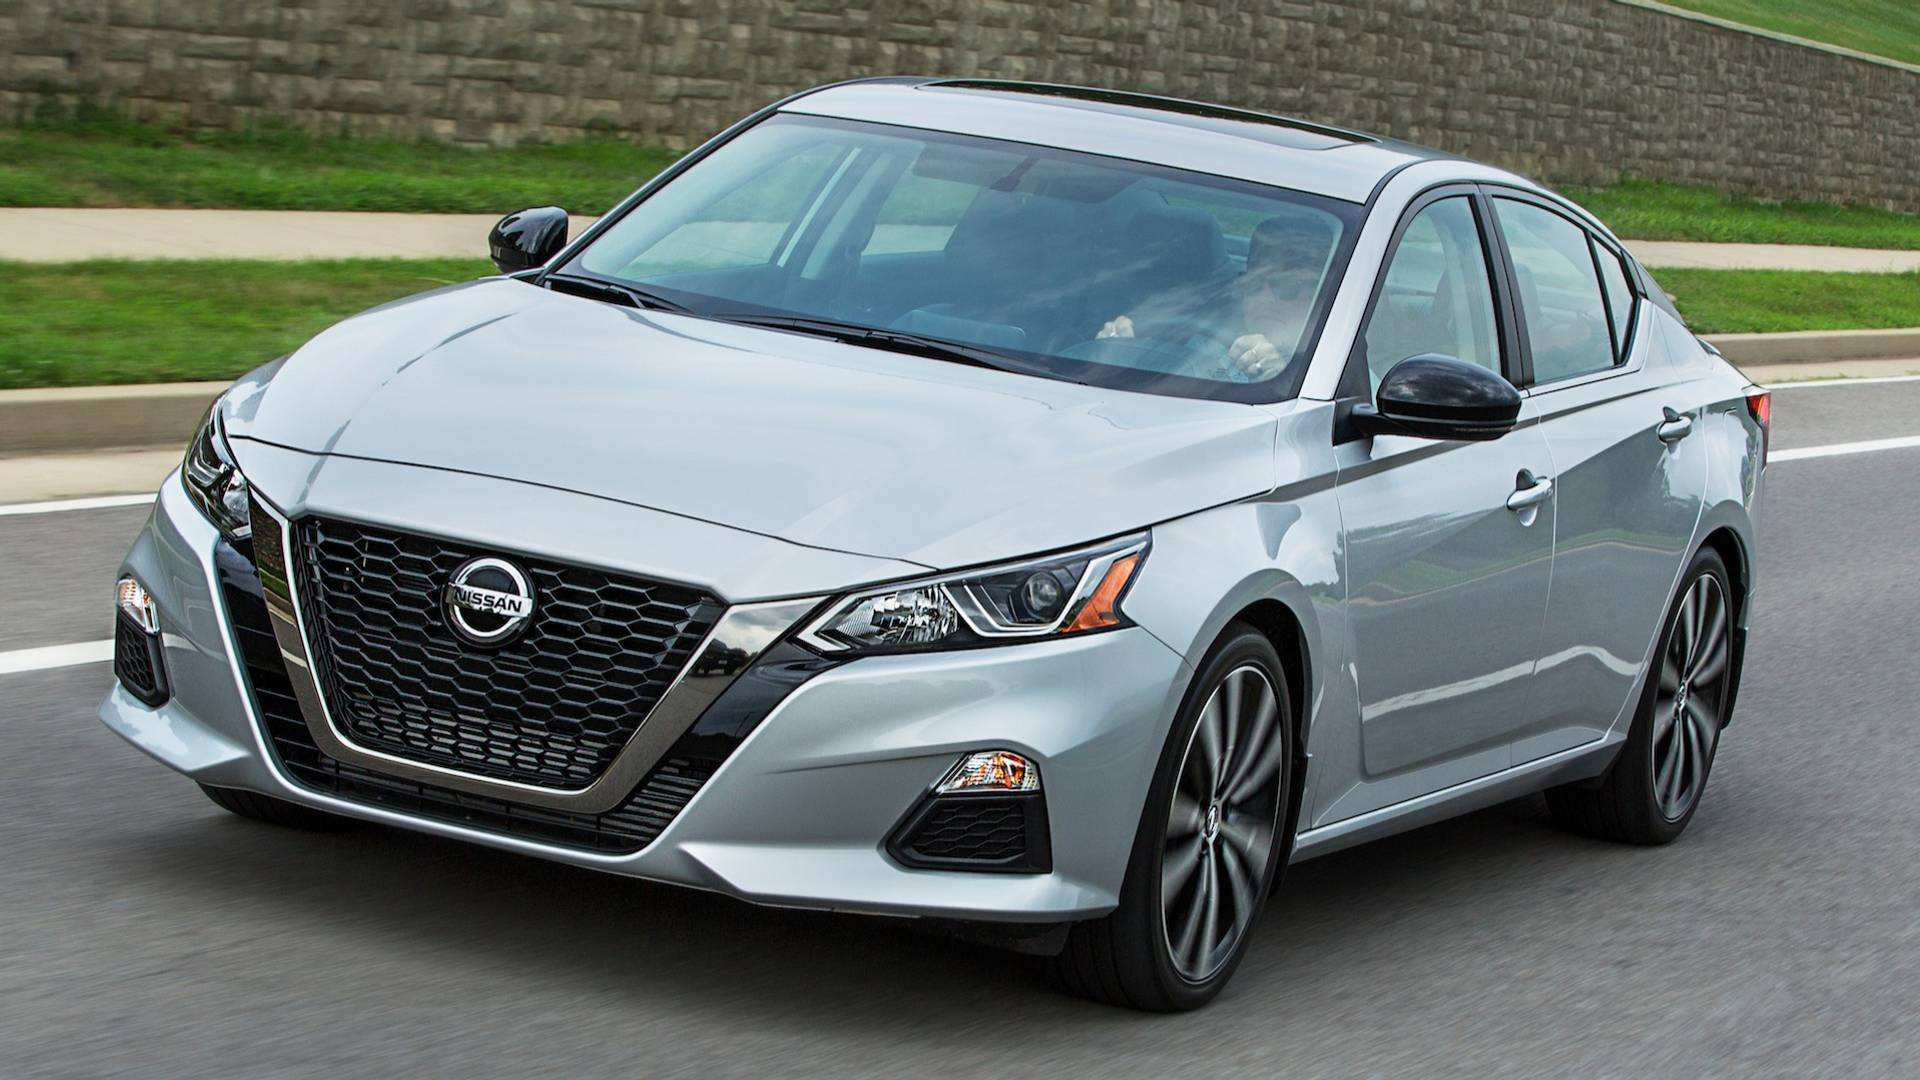 15 Gallery of Nissan Altima 2019 Prices with Nissan Altima 2019